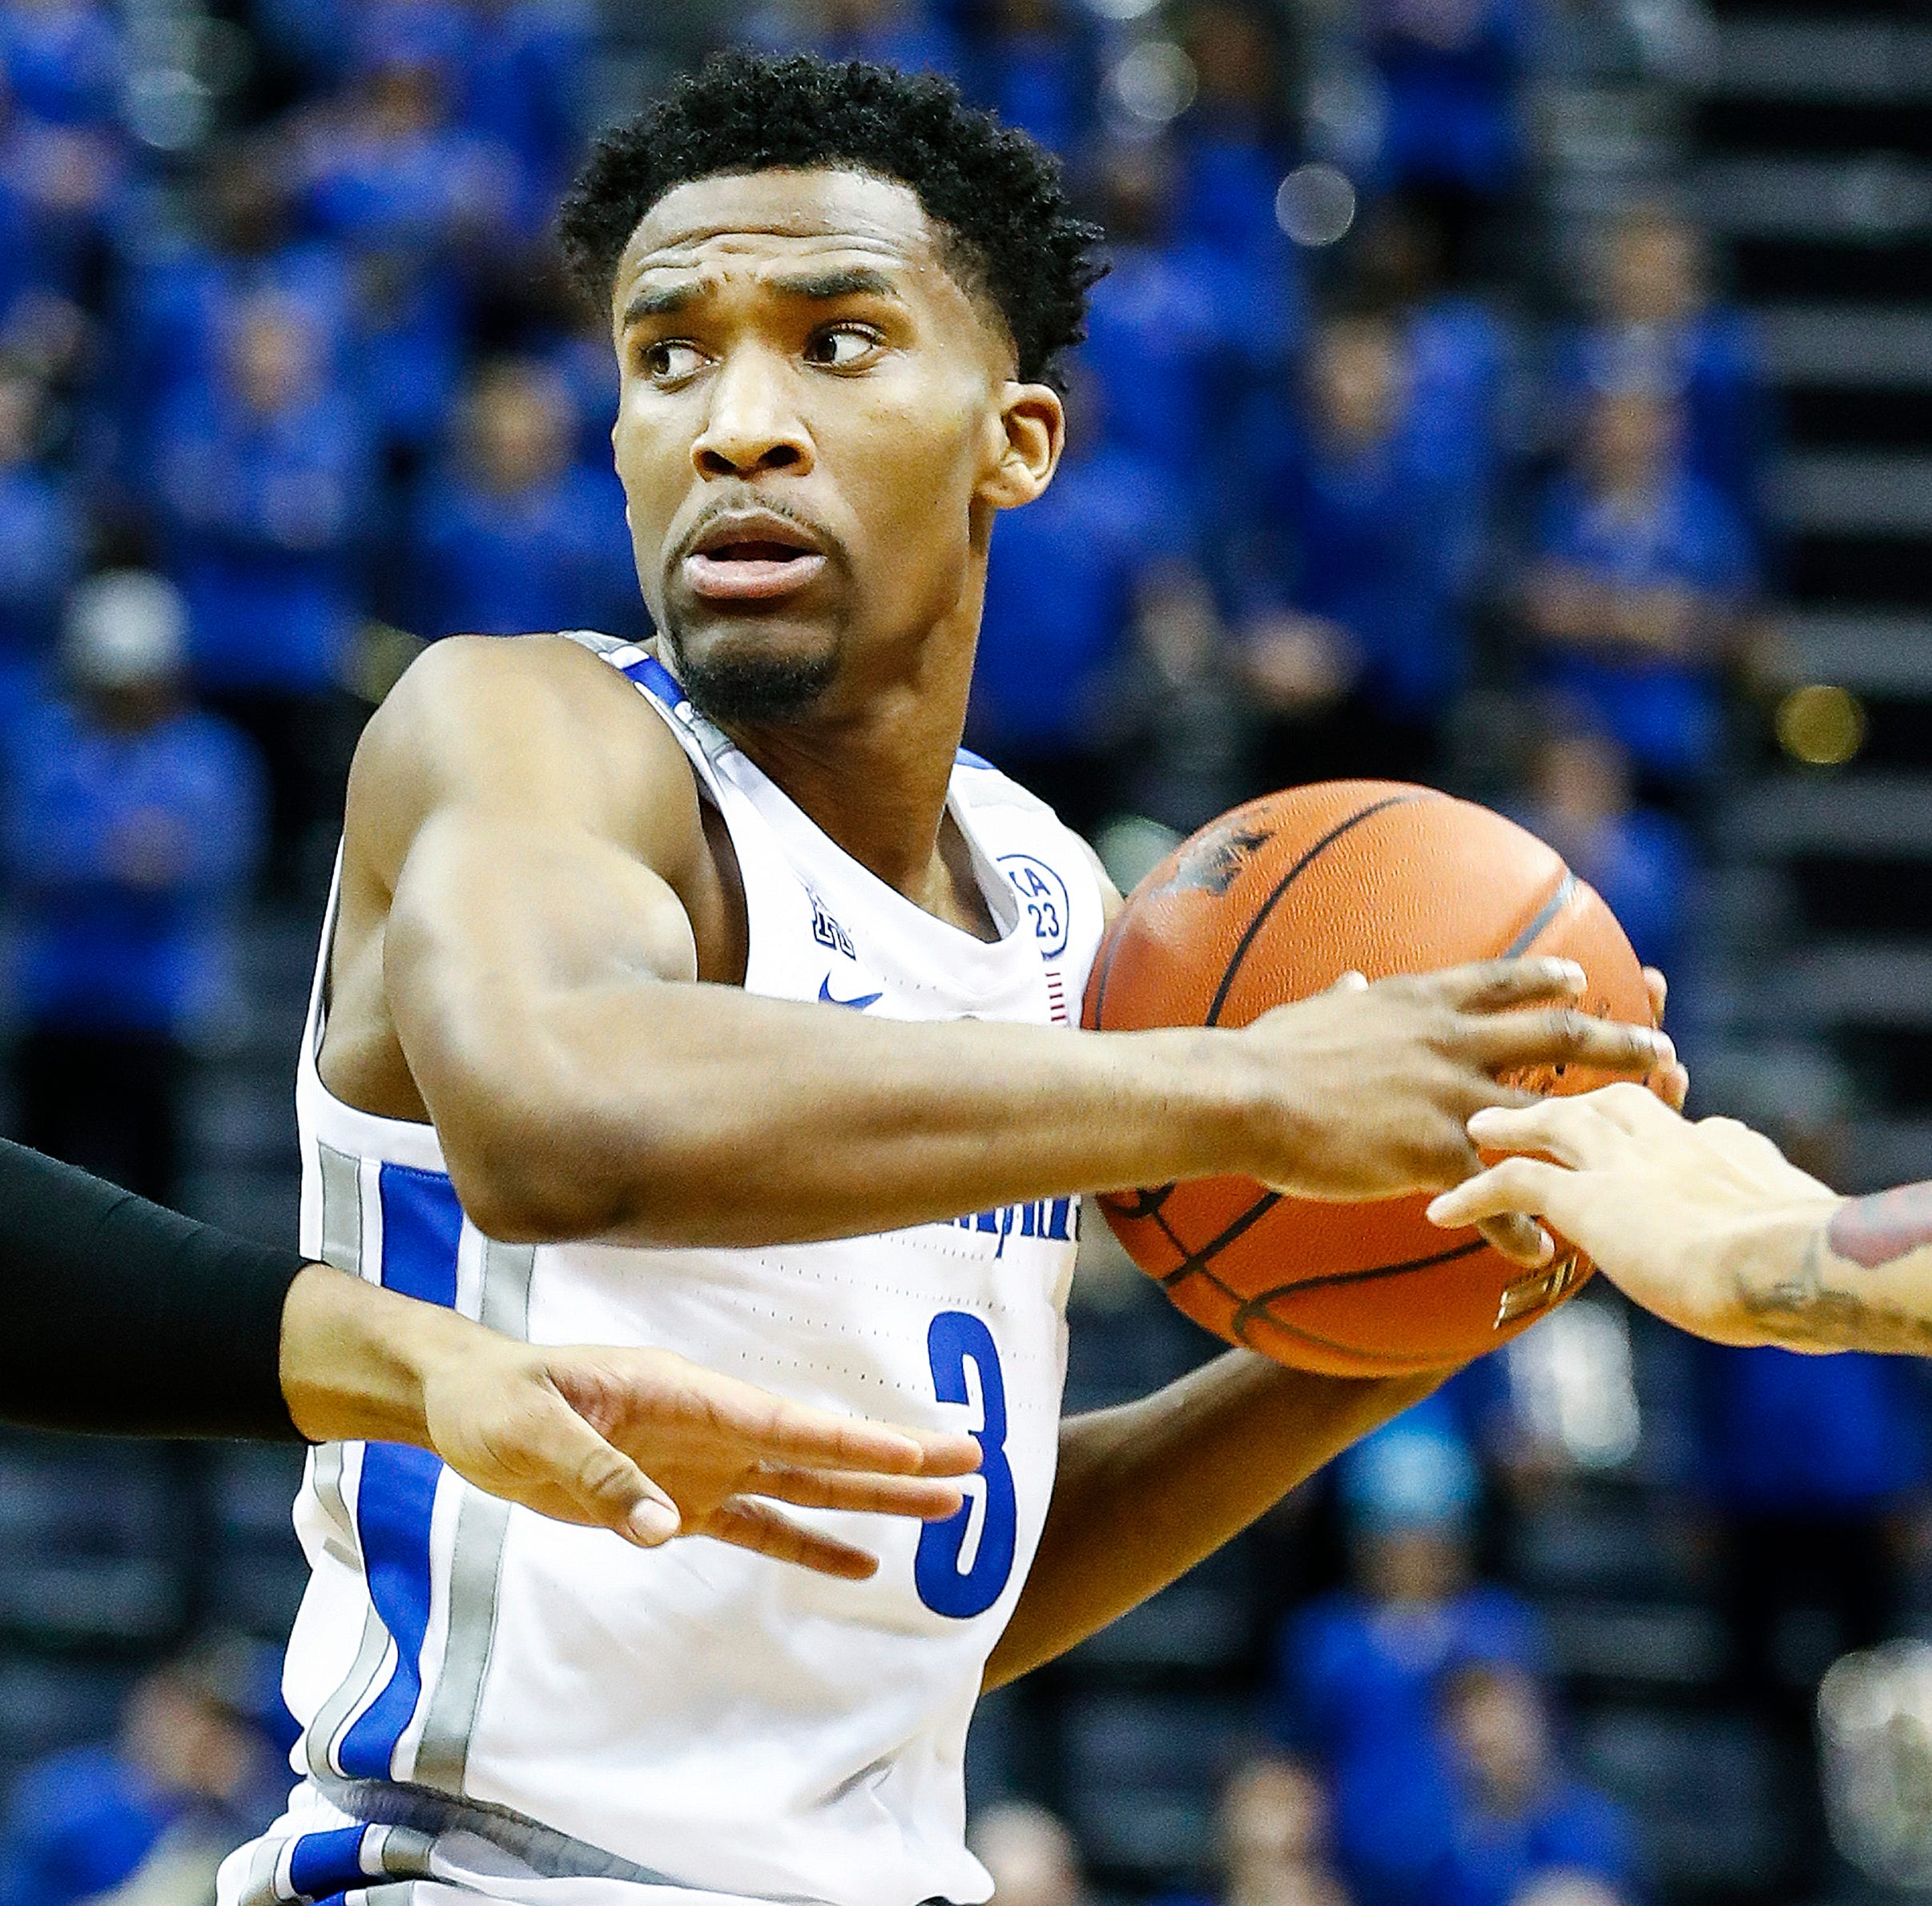 Memphis basketball: Tigers senior Jeremiah Martin earns first team all-conference honors